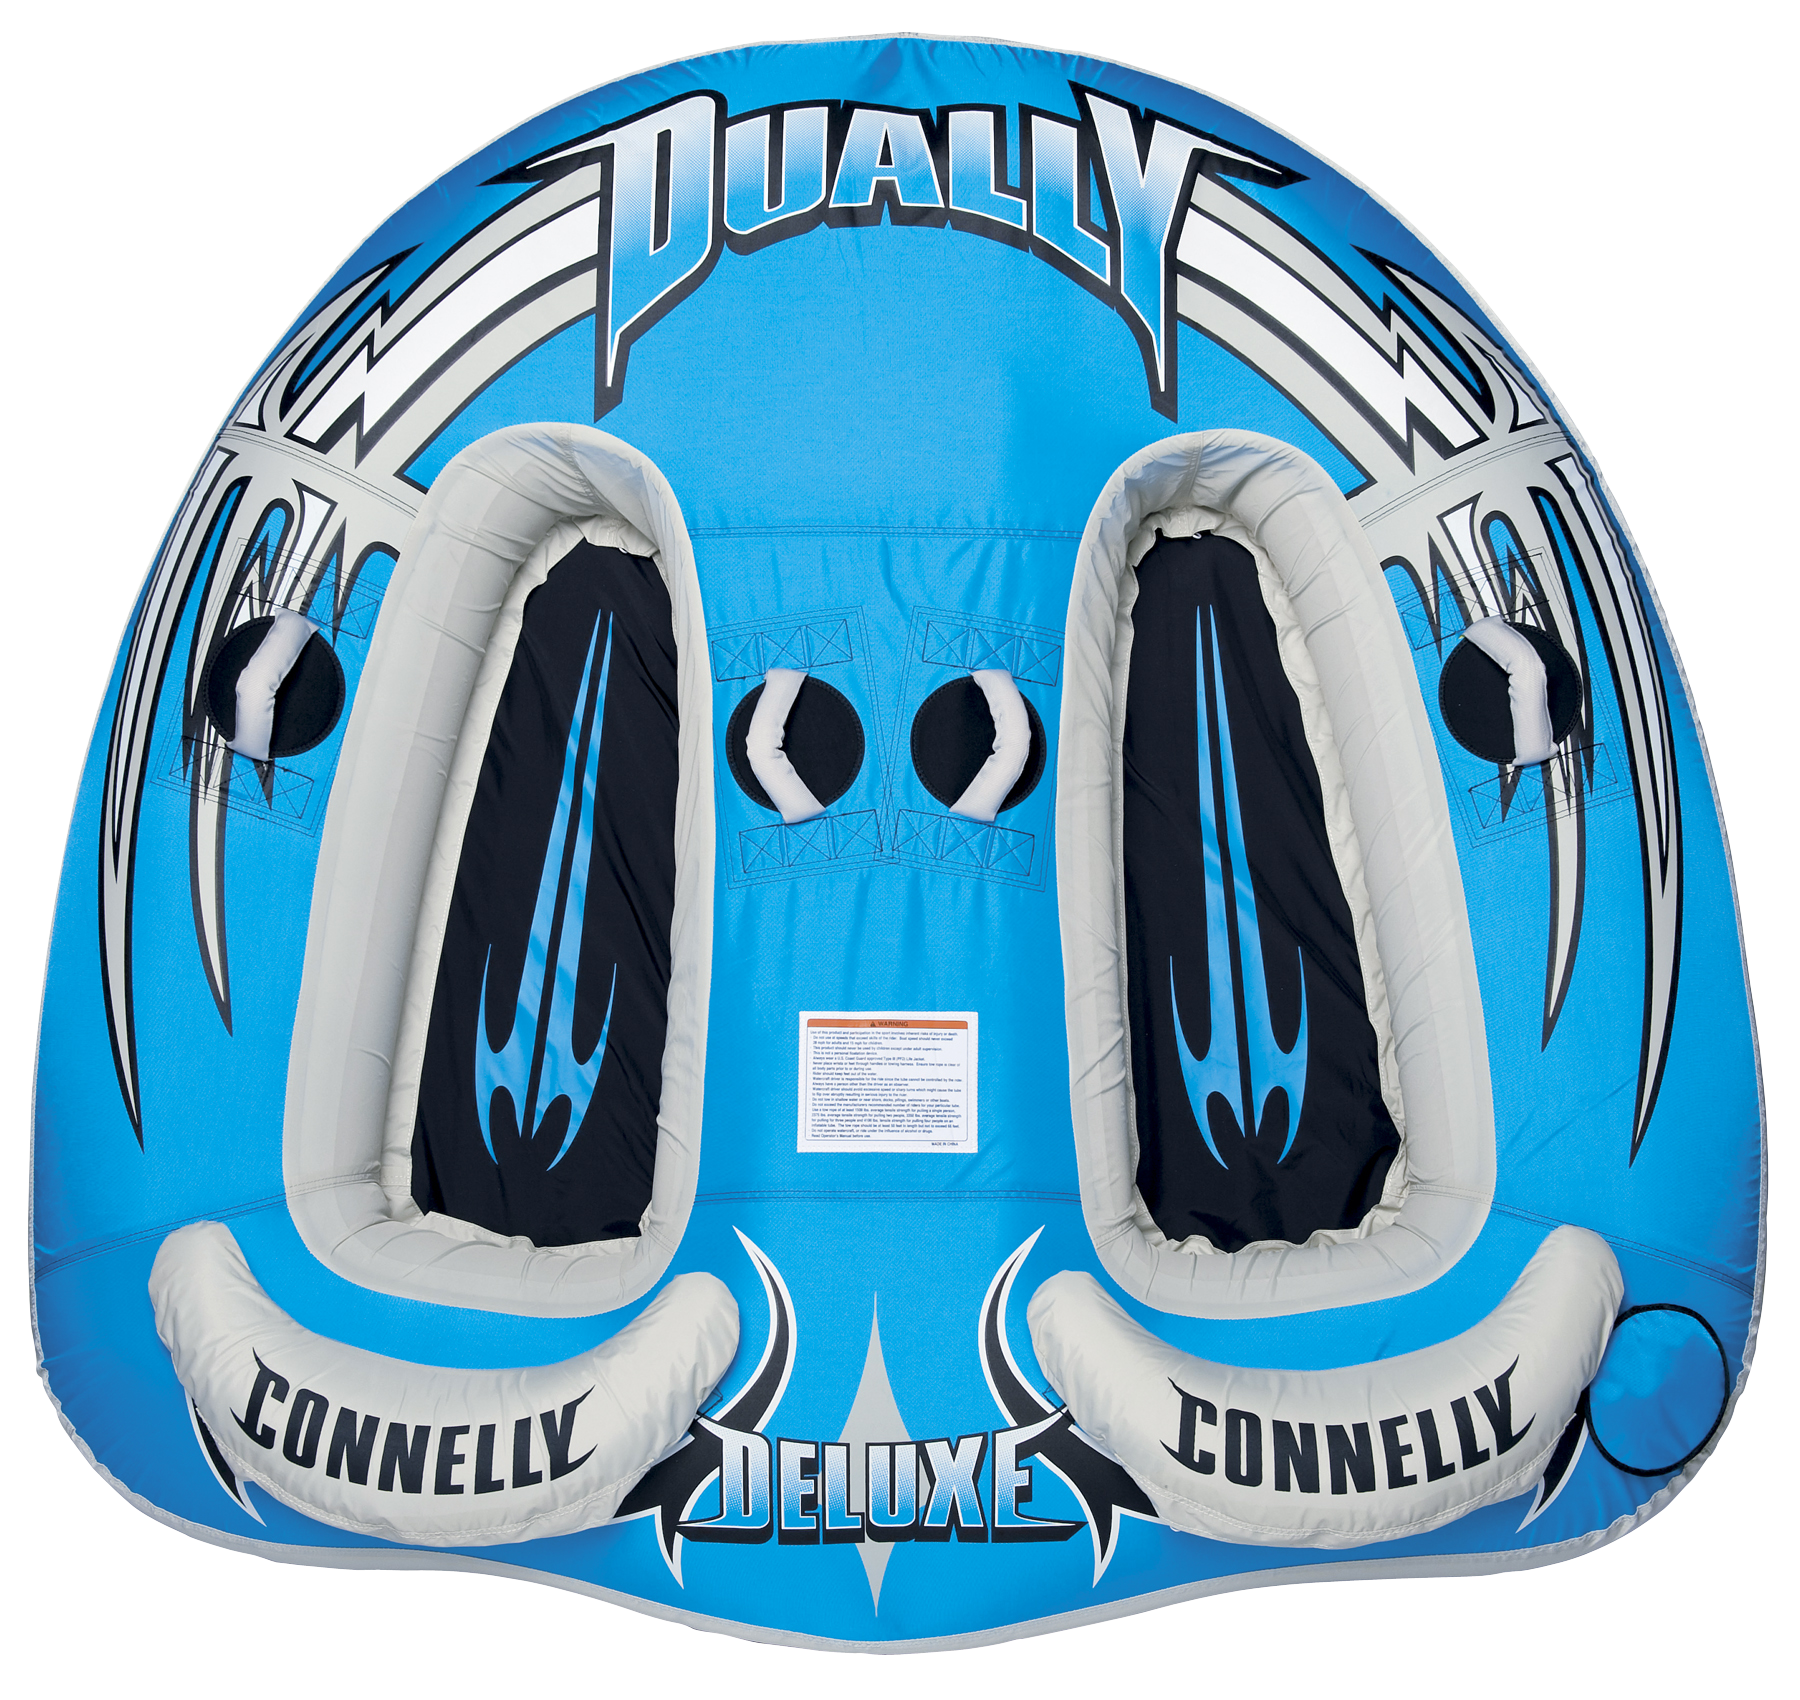 Connelly - Dually Deluxe 2 Man Wakeboard Towable Inflatable Tube